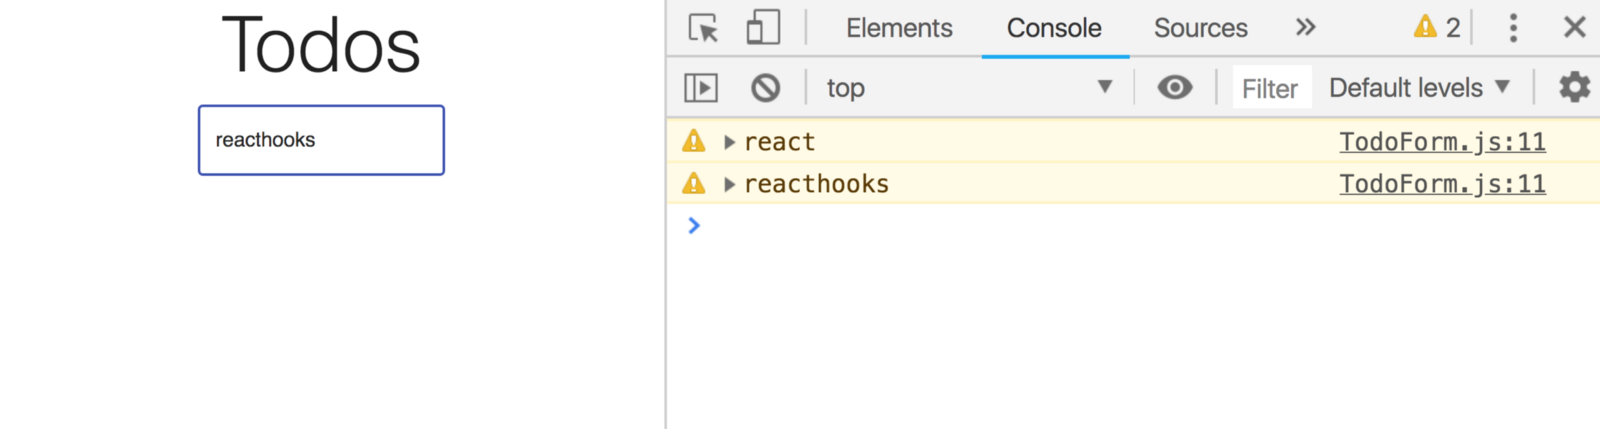 How to Build a Todo List with React Hooks